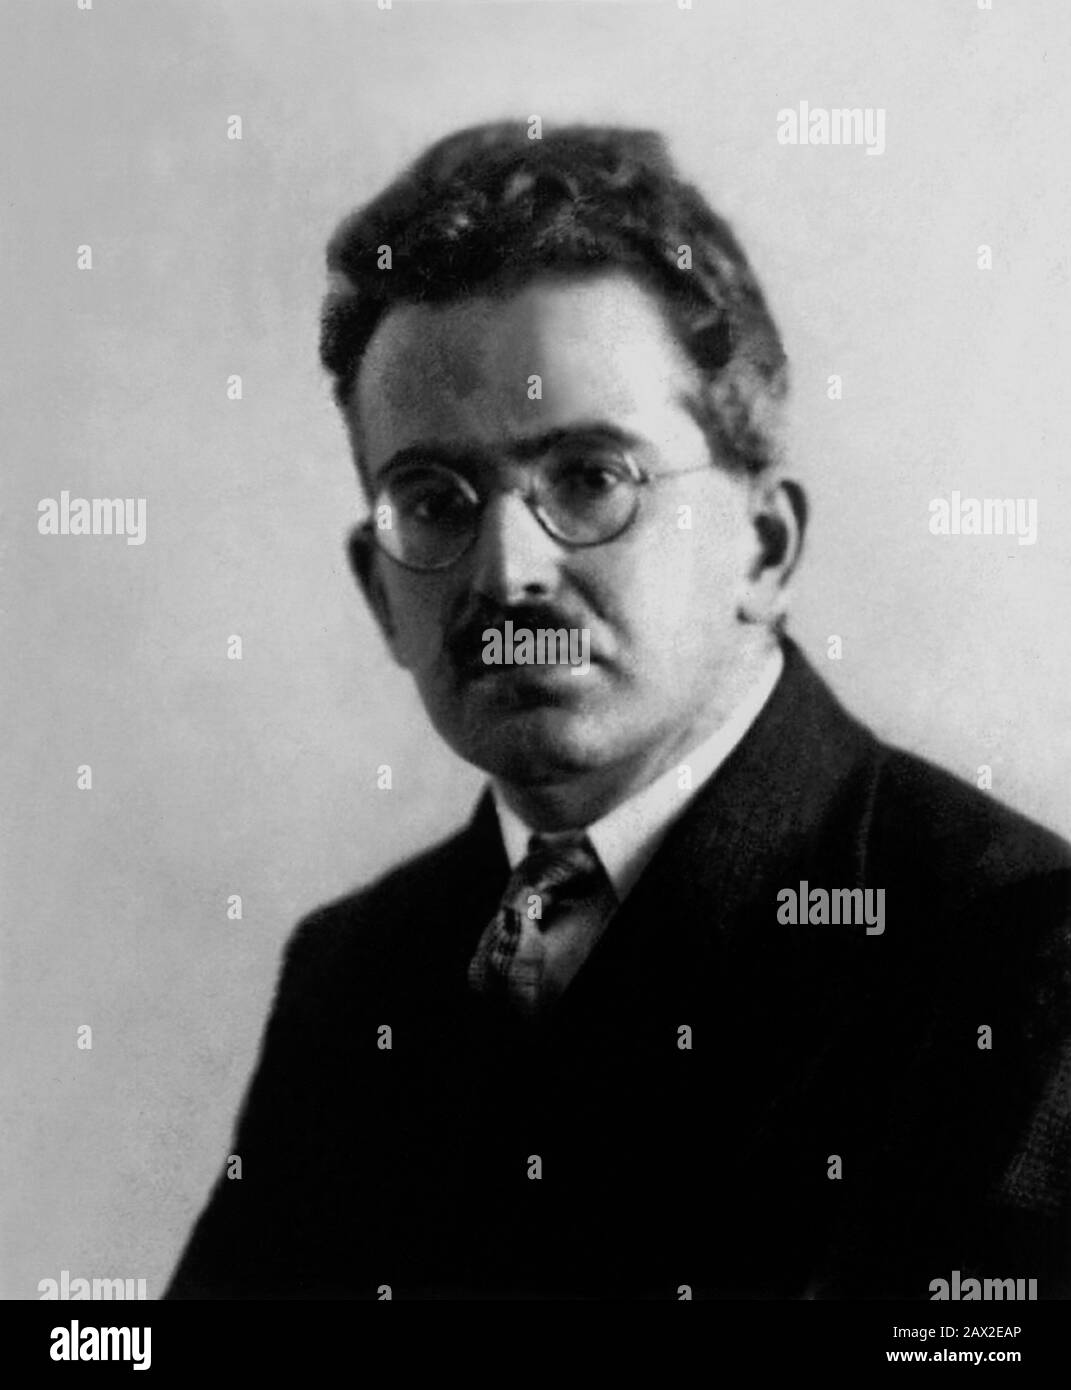 1930 ca , GERMANY : The most celebrated german Jewish writer ,  literary critic ,  sociologist , translator , radio broadcaster and philosopher WALTER BENJAMIN ( 1892 - 1940 ).  His work, combining elements of German idealism or Romanticism, Historical Materialism and Jewish mysticism, has made enduring and influential contributions to aesthetic theory and Western Marxism  and has sometimes been associated with the Frankfurt School of critical theory.  - FILOSOFO - FILOSOFIA - PHILOSOPHY - baffi - moustache  - lens - occhiali da vista - SCRITTORE - LETTERATURA - LITERATURE -  EBREO - ebraismo Stock Photo